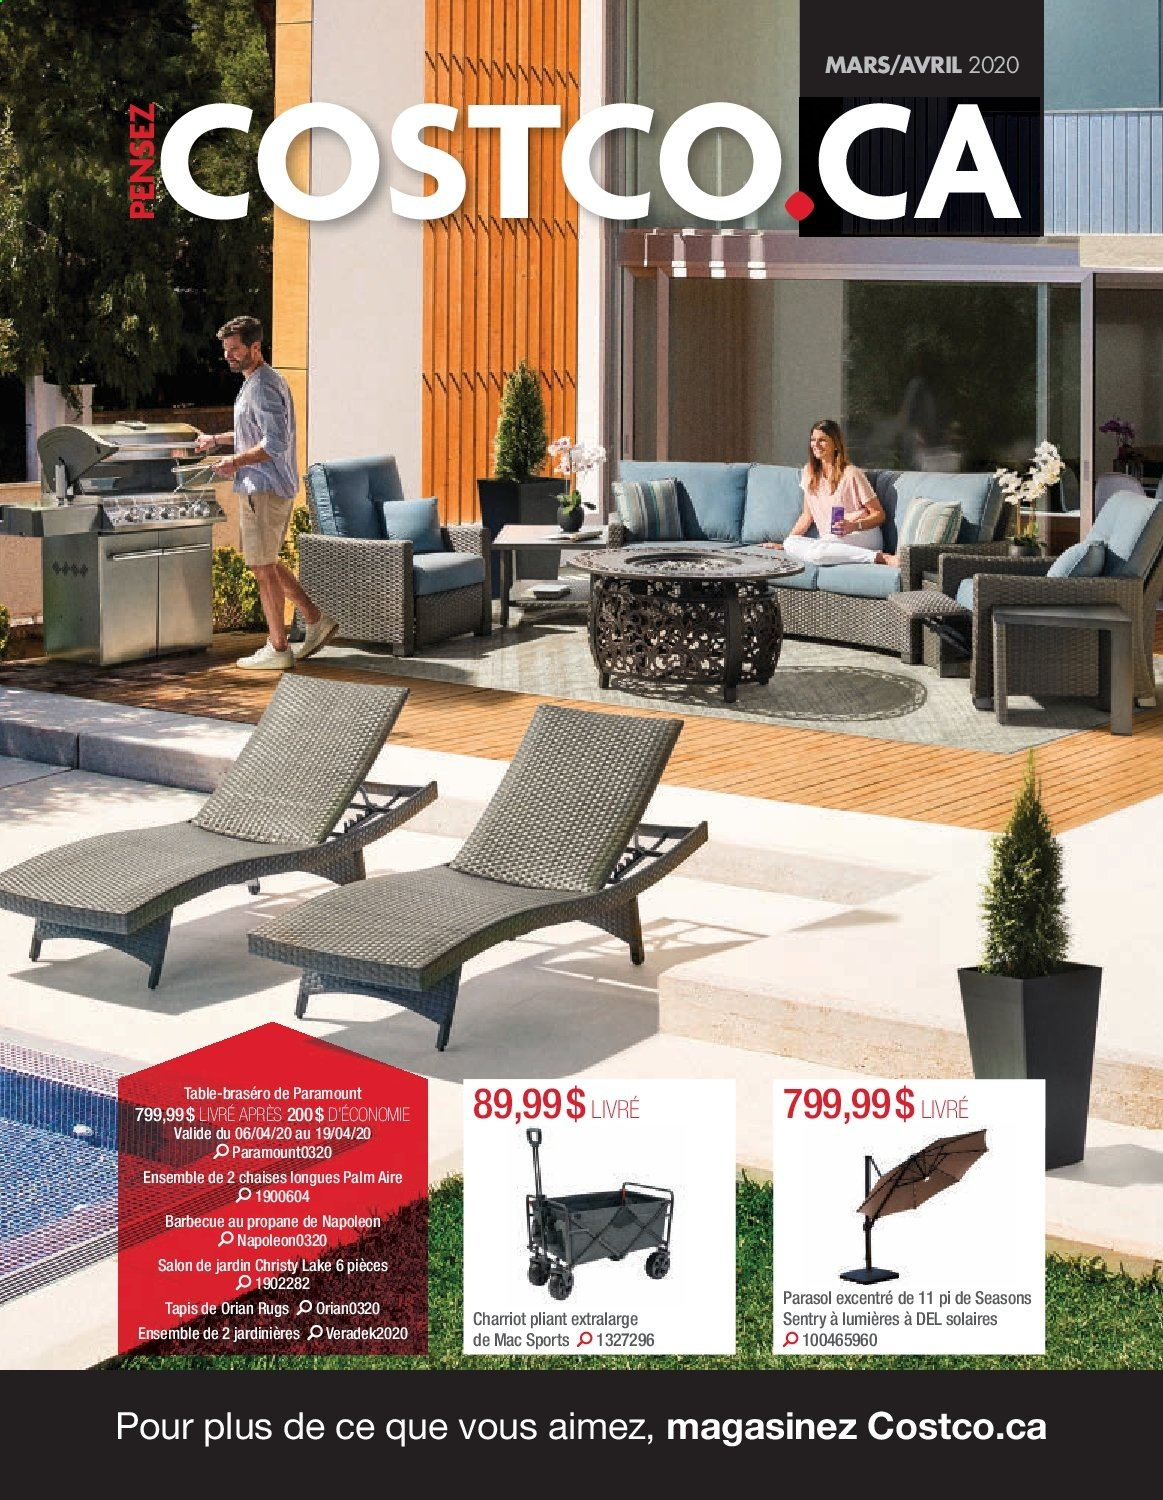 Costco Flyer - March 01, 2020 - April 30, 2020 - Sales products - rug, table, tapis, barbecue. Page 1.